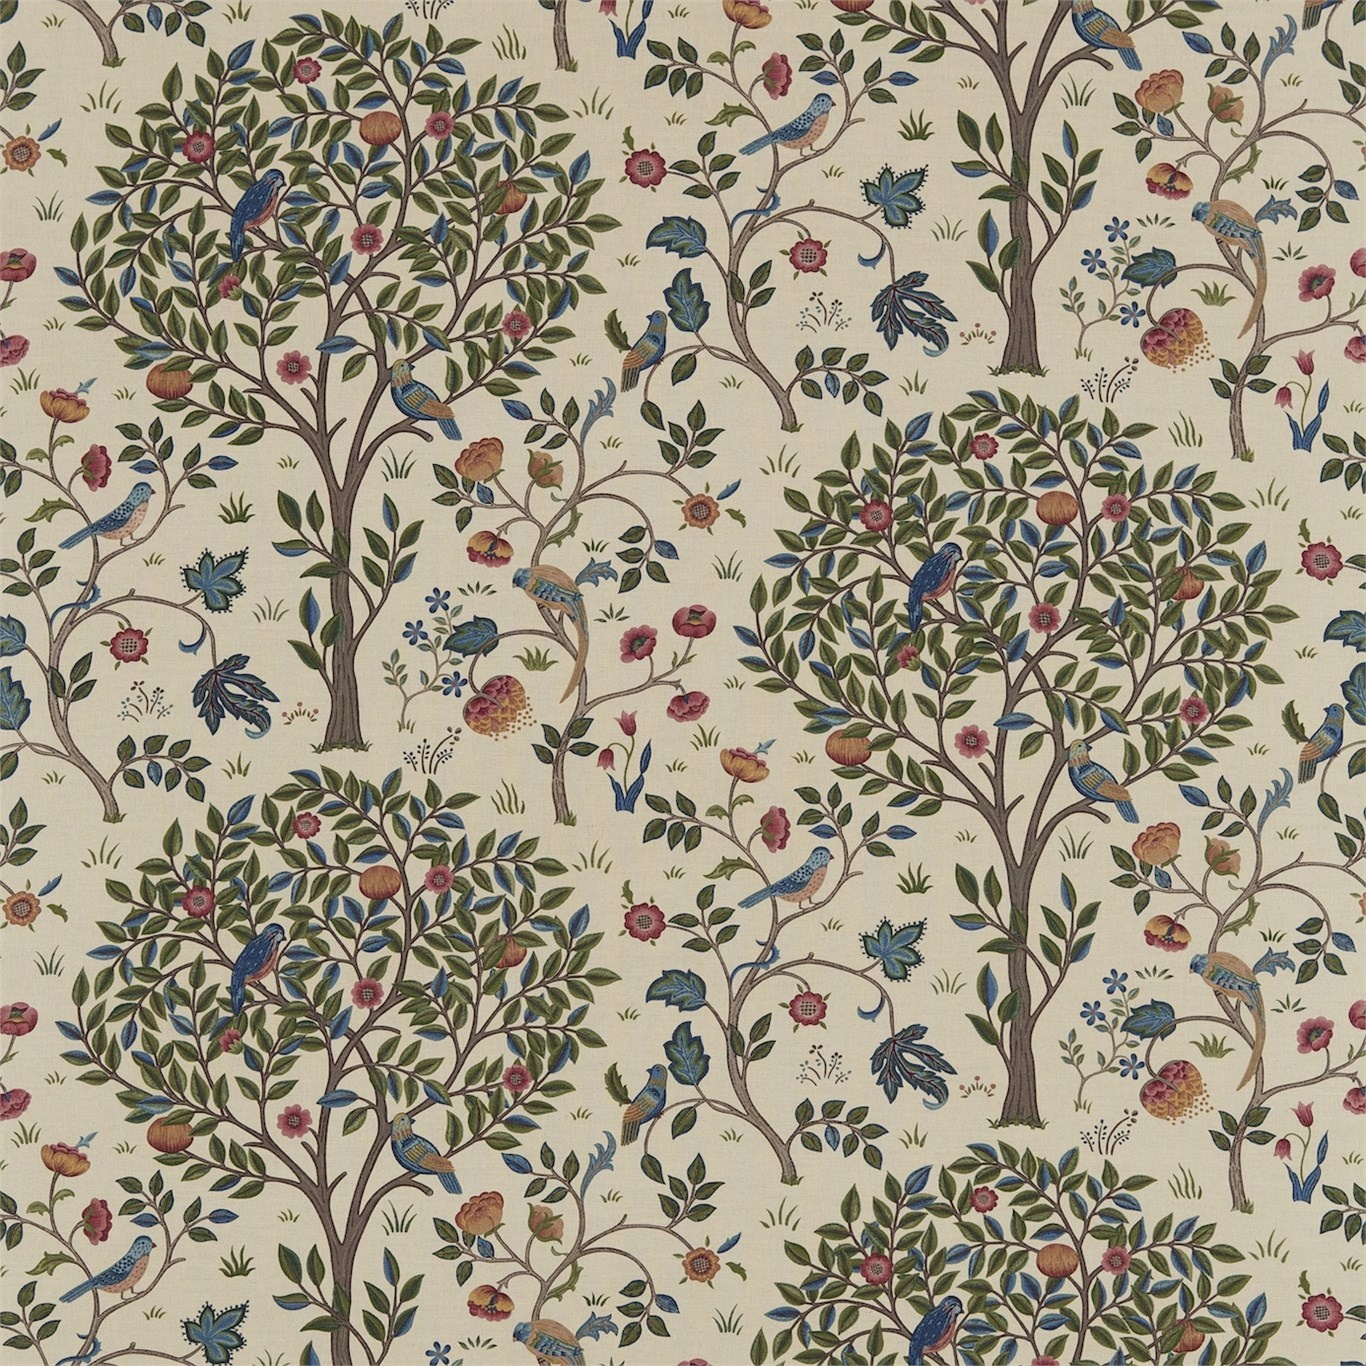 Image of Morris & Co Kelmscott Tree Woad/Wine Curtain Fabric 220327, 226449